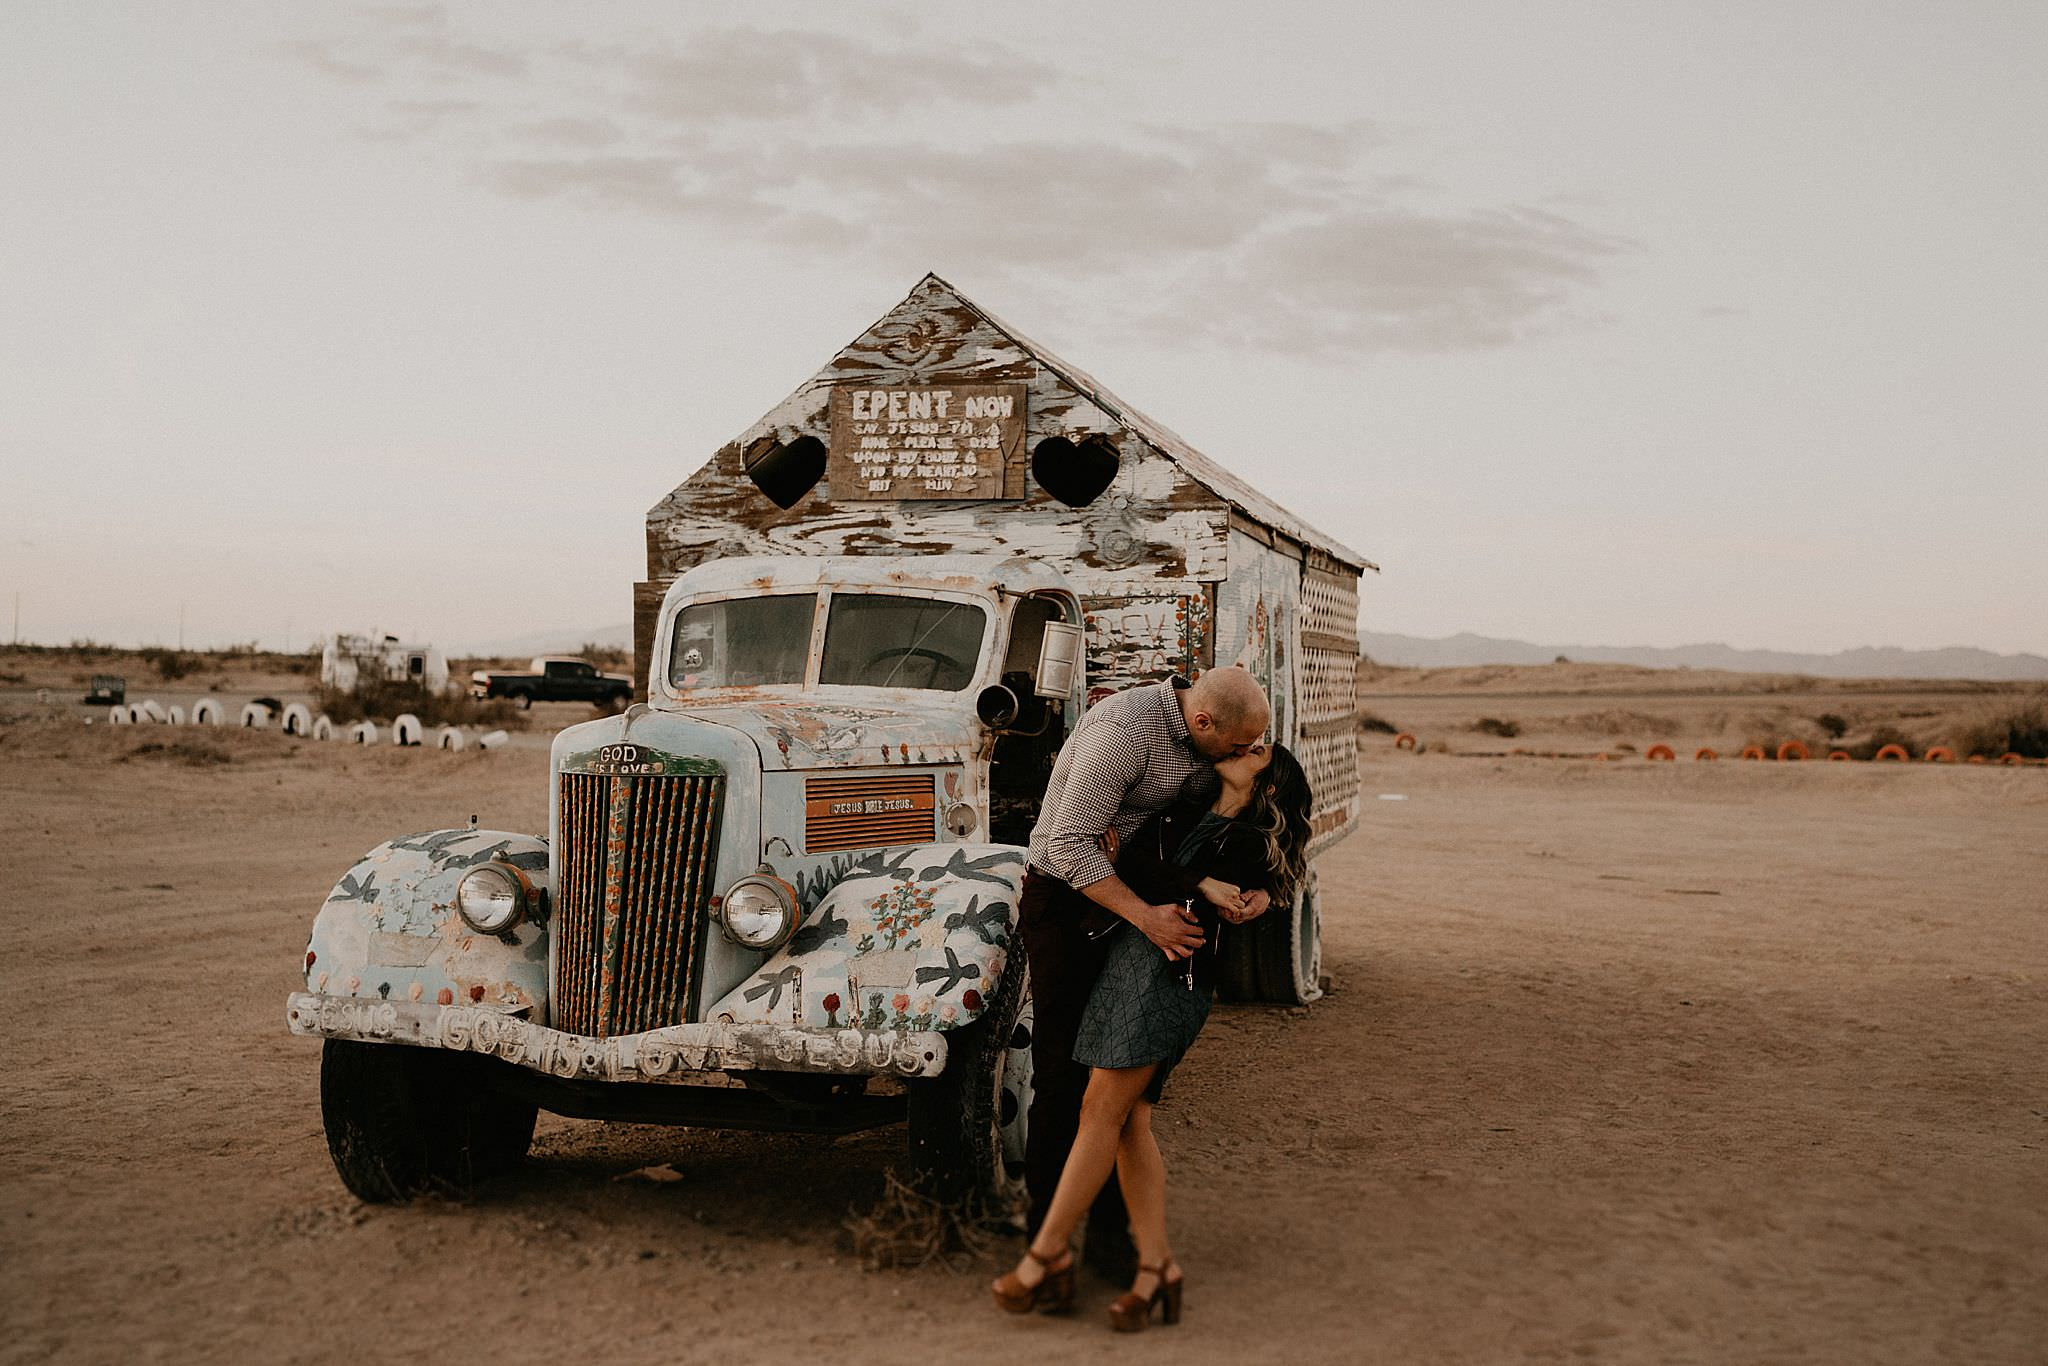 Hipster cool bus found near salvation mountain for engagement photos